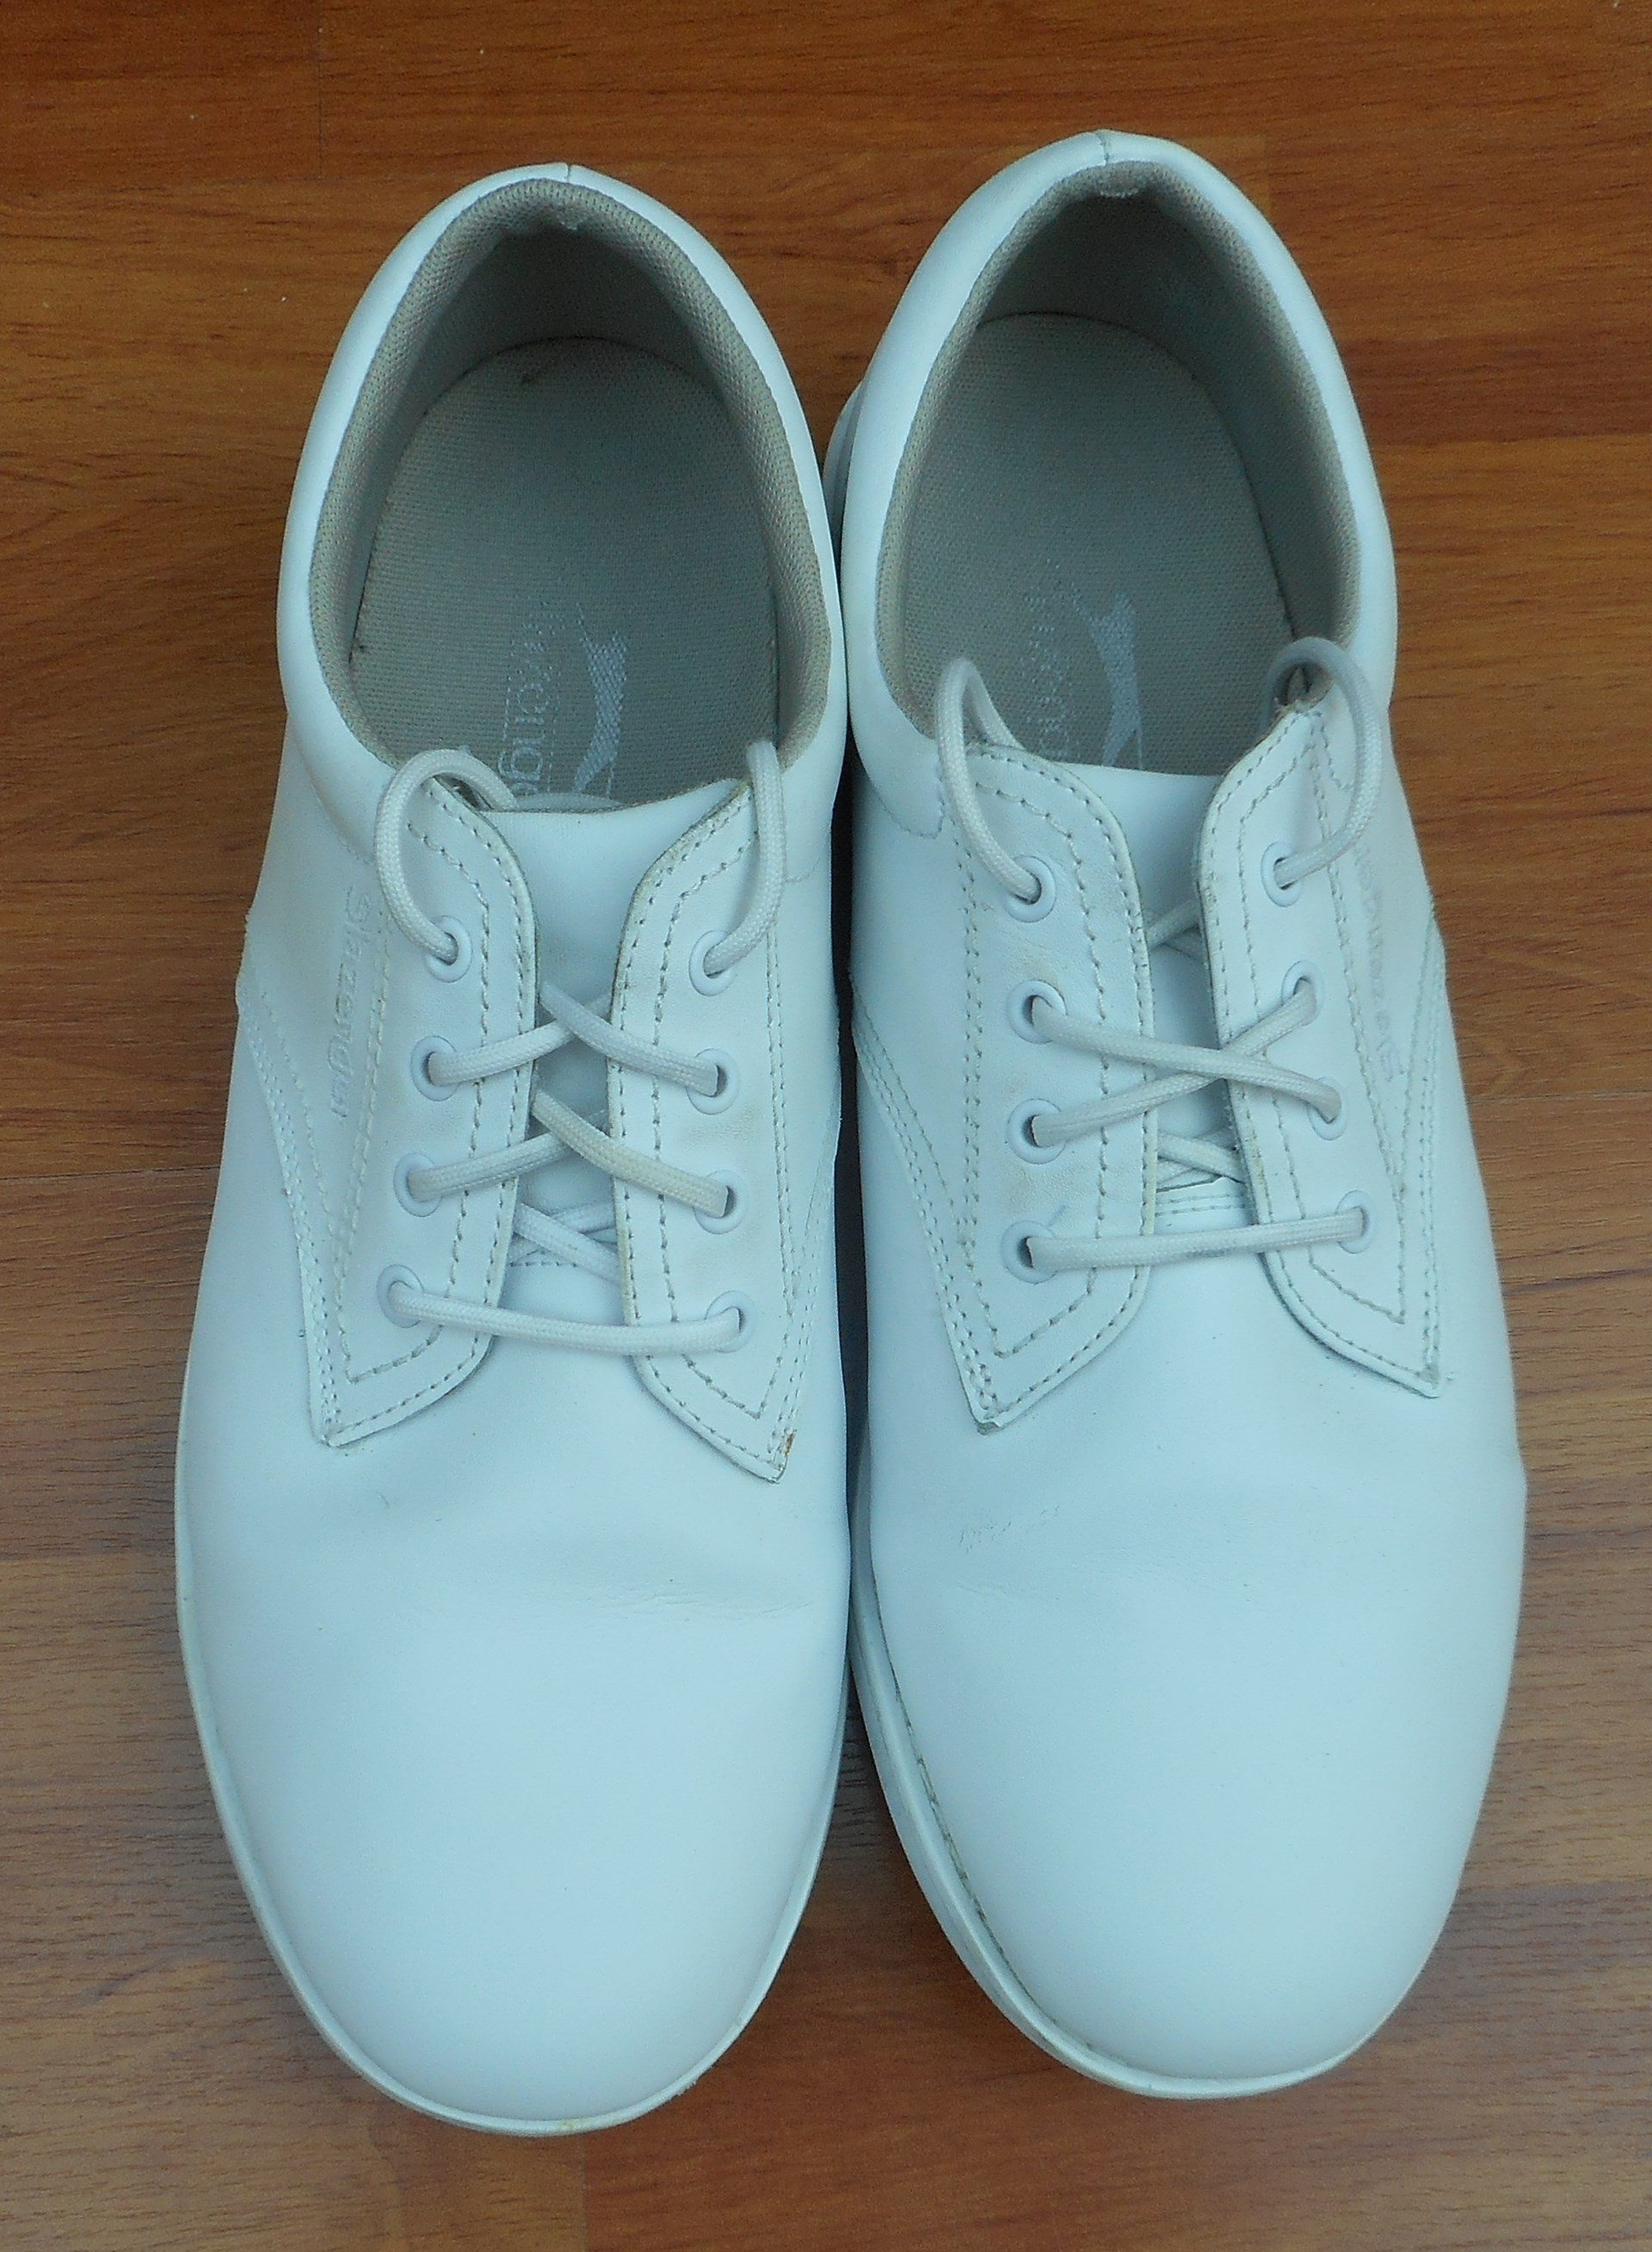 Slazenger Bowls Shoes